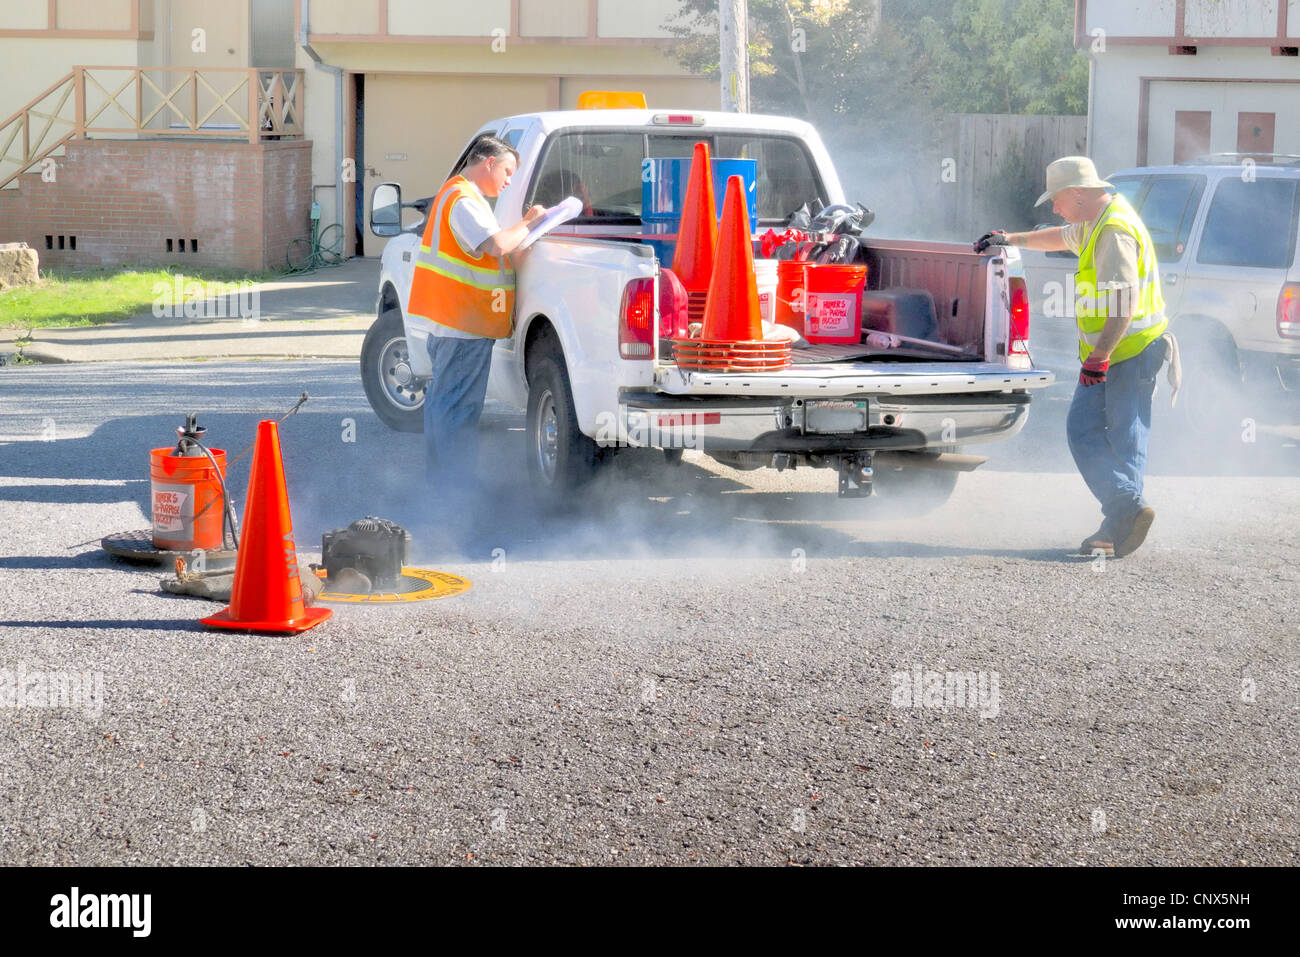 Smoke testing a city sewer system for leaks - Stock Image